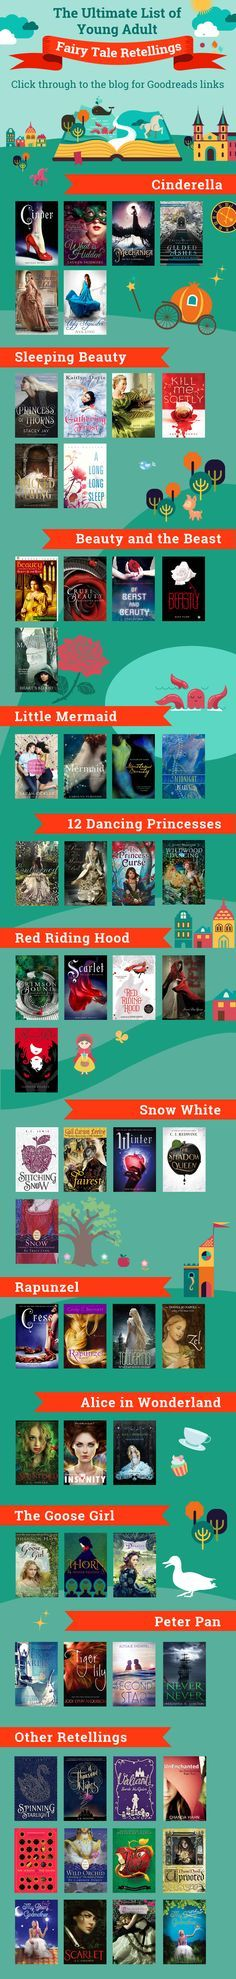 The Ultimate Book List of Young Adult Fairy Tale Retellings. Books include Cinderella, Sleeping Beauty, Beauty and the Beast, The Little Mermaid, The 12 Dancing Princesses, Little Red Riding Hood, Snow White, Rapunzel, Alice in Wonderland, The Goose Girl, and Peter Pan.